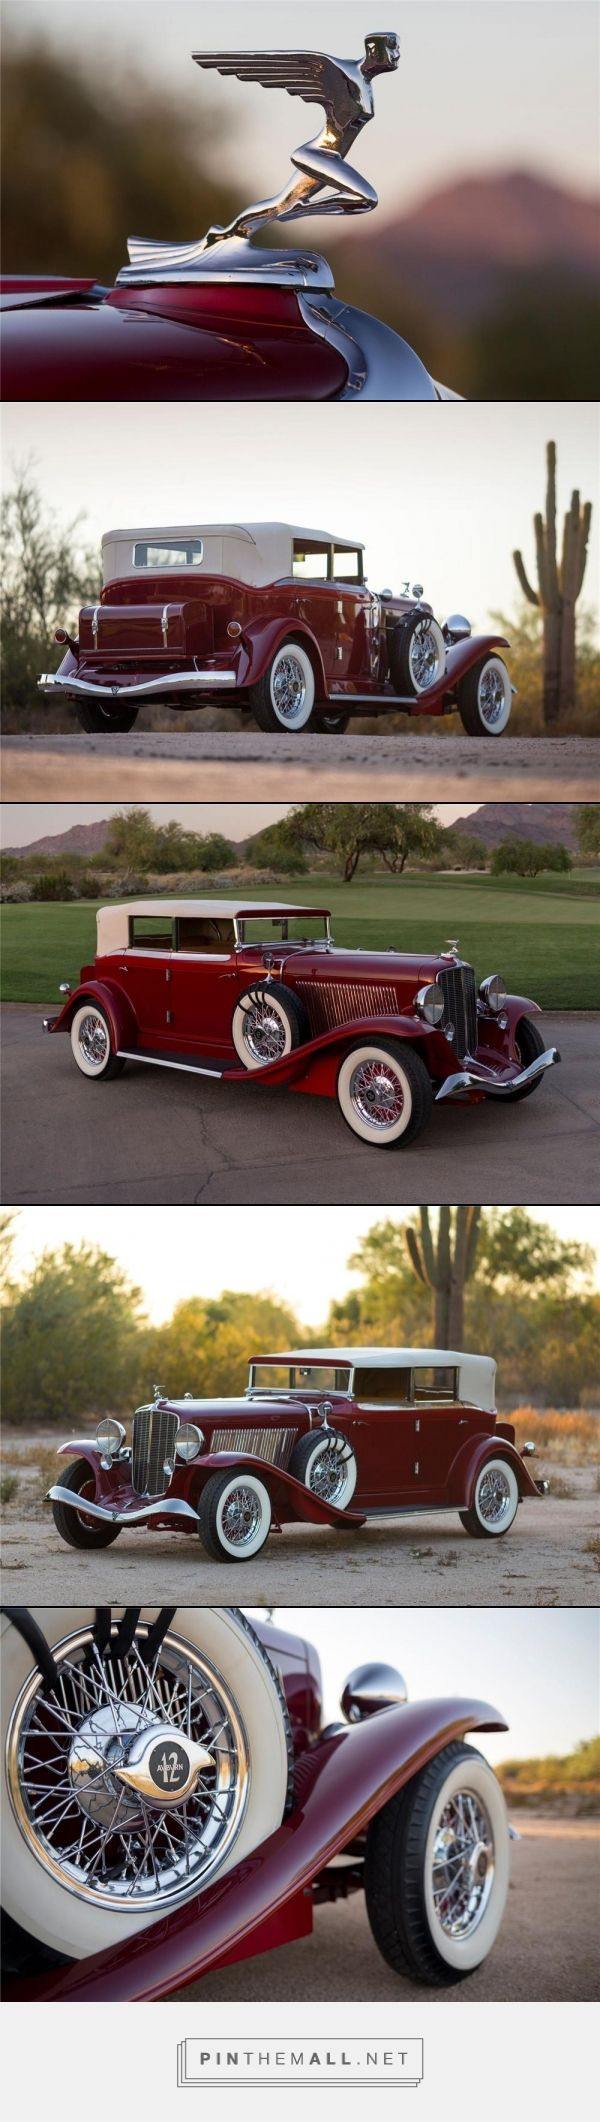 533 best images about Vintage auto on Pinterest | Plymouth